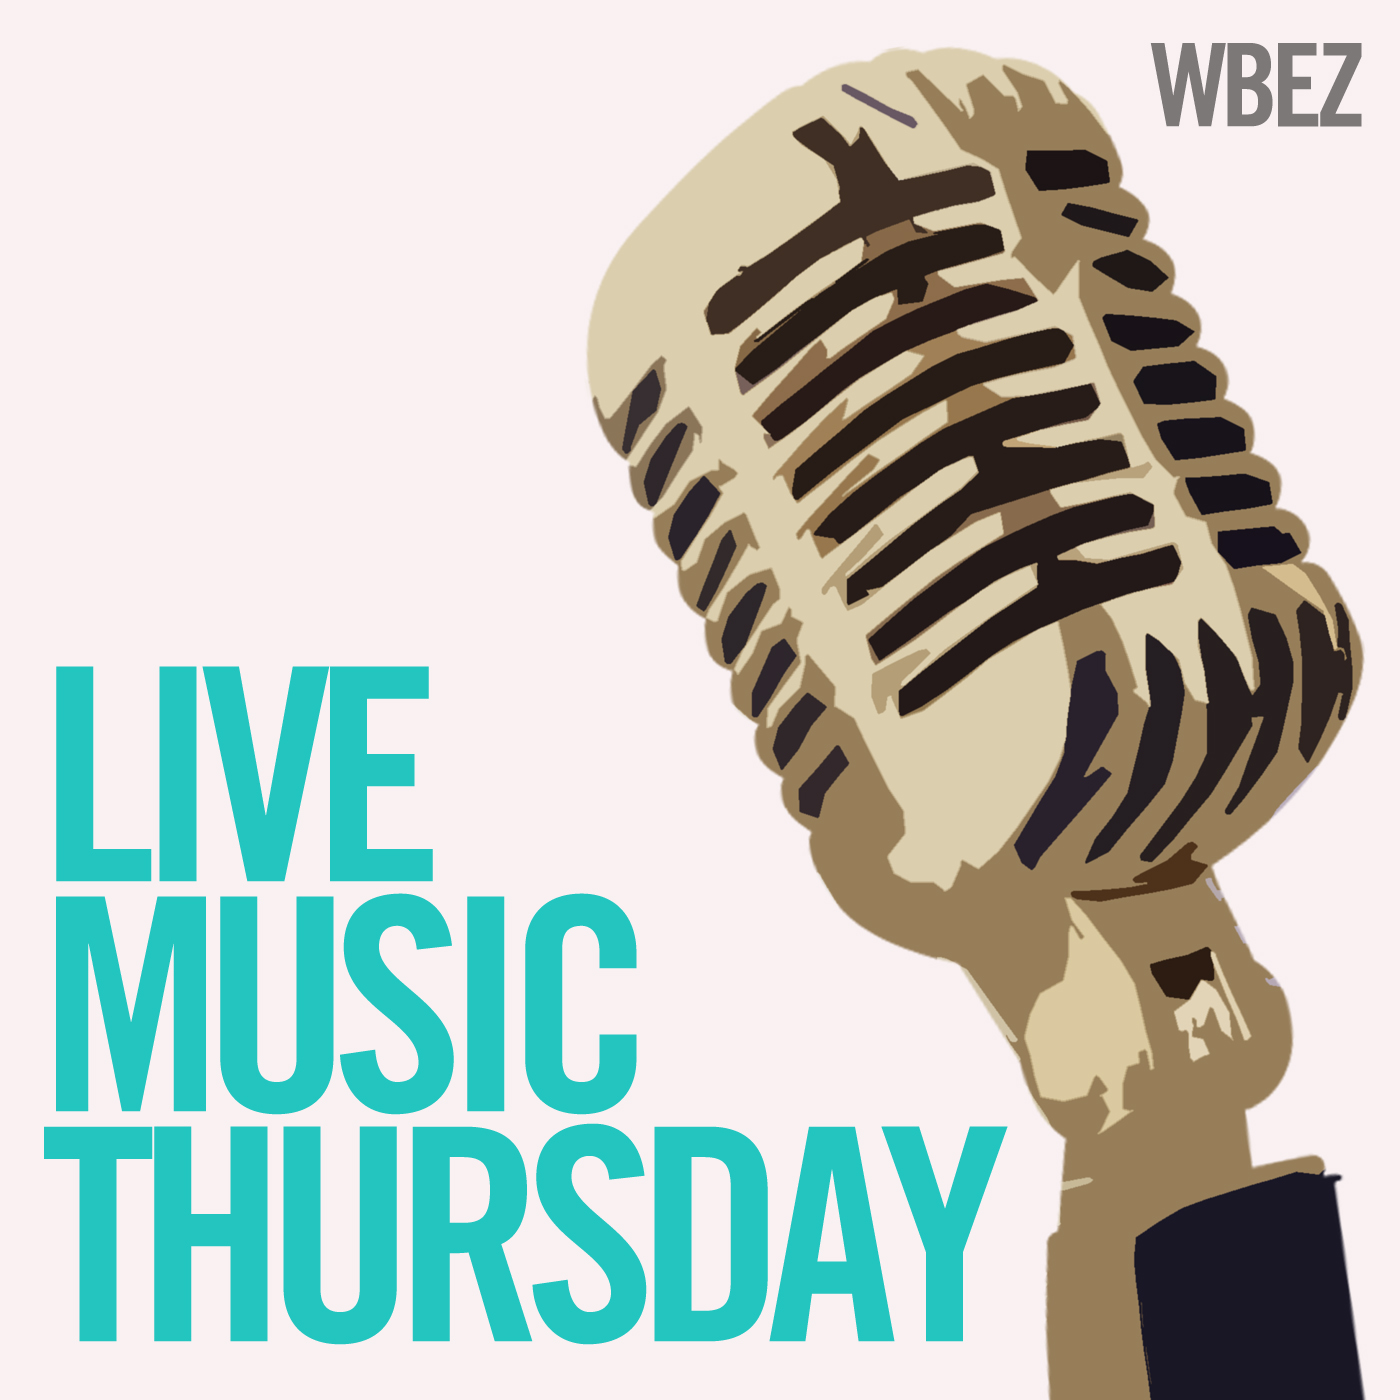 WBEZ's Live Music Thursday